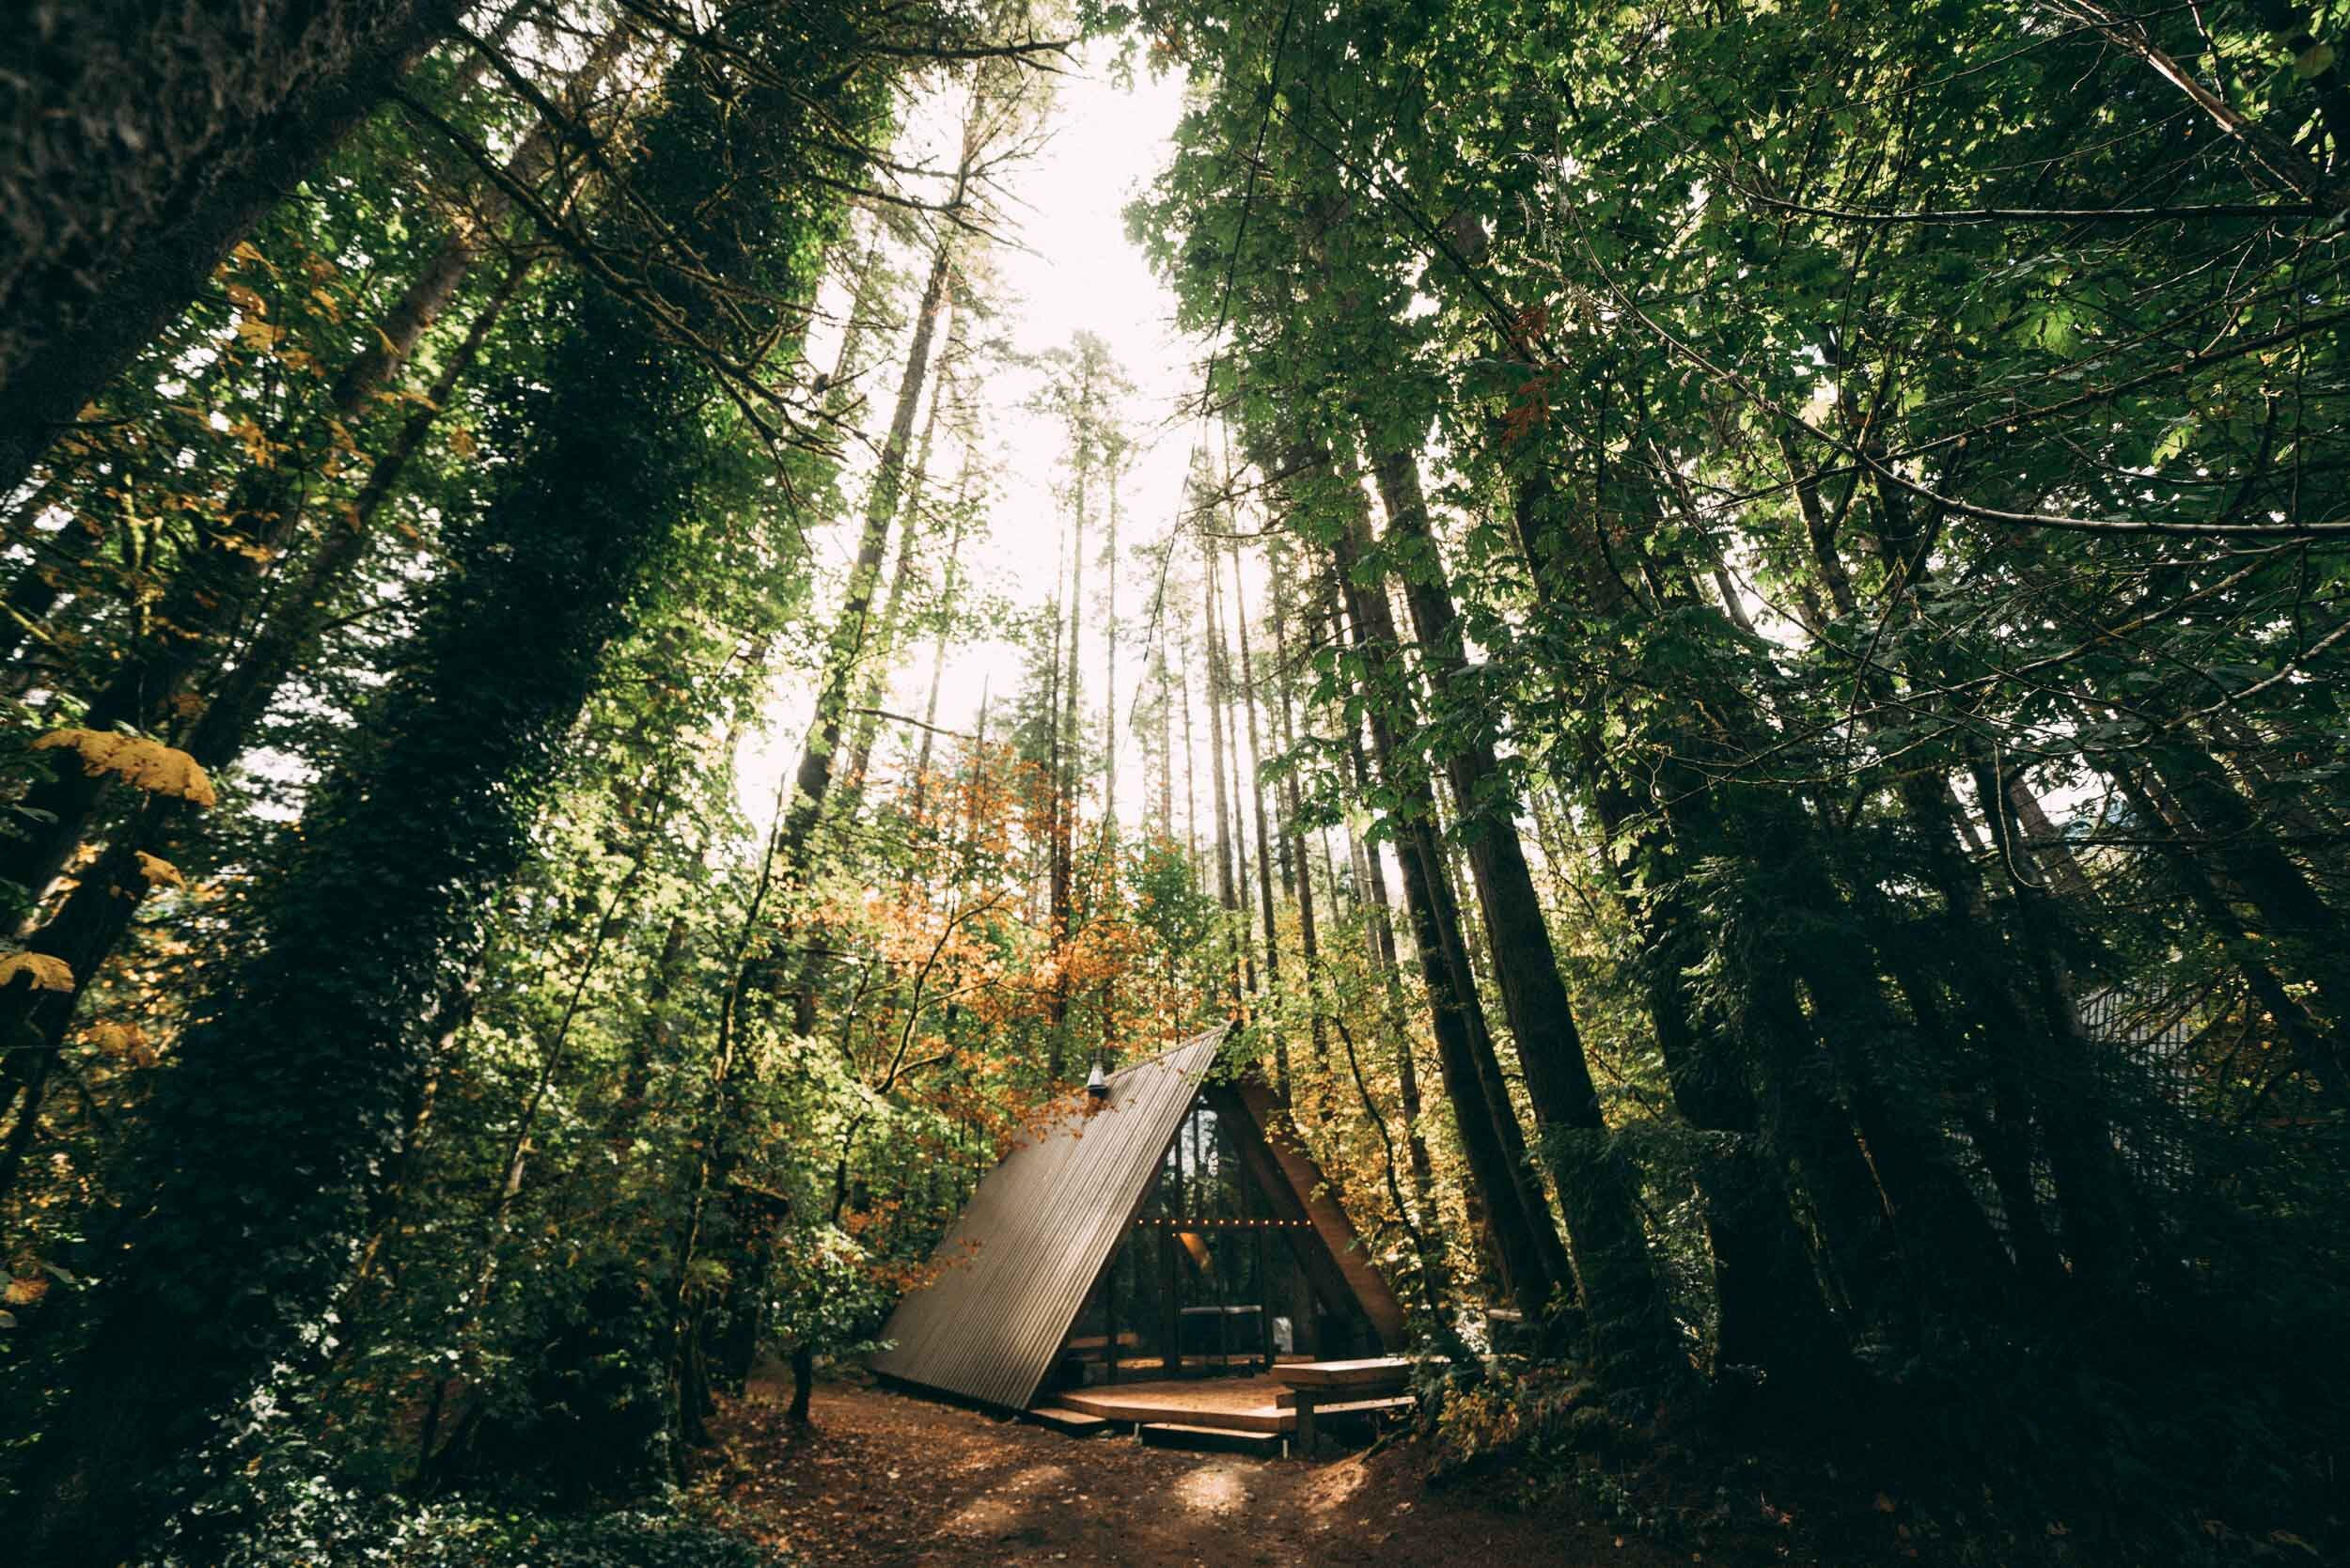 Sky Hous is one of three picturesque A-frame cabins owned by the Tye River Cabin Co. just outside of Skykomish, WA.